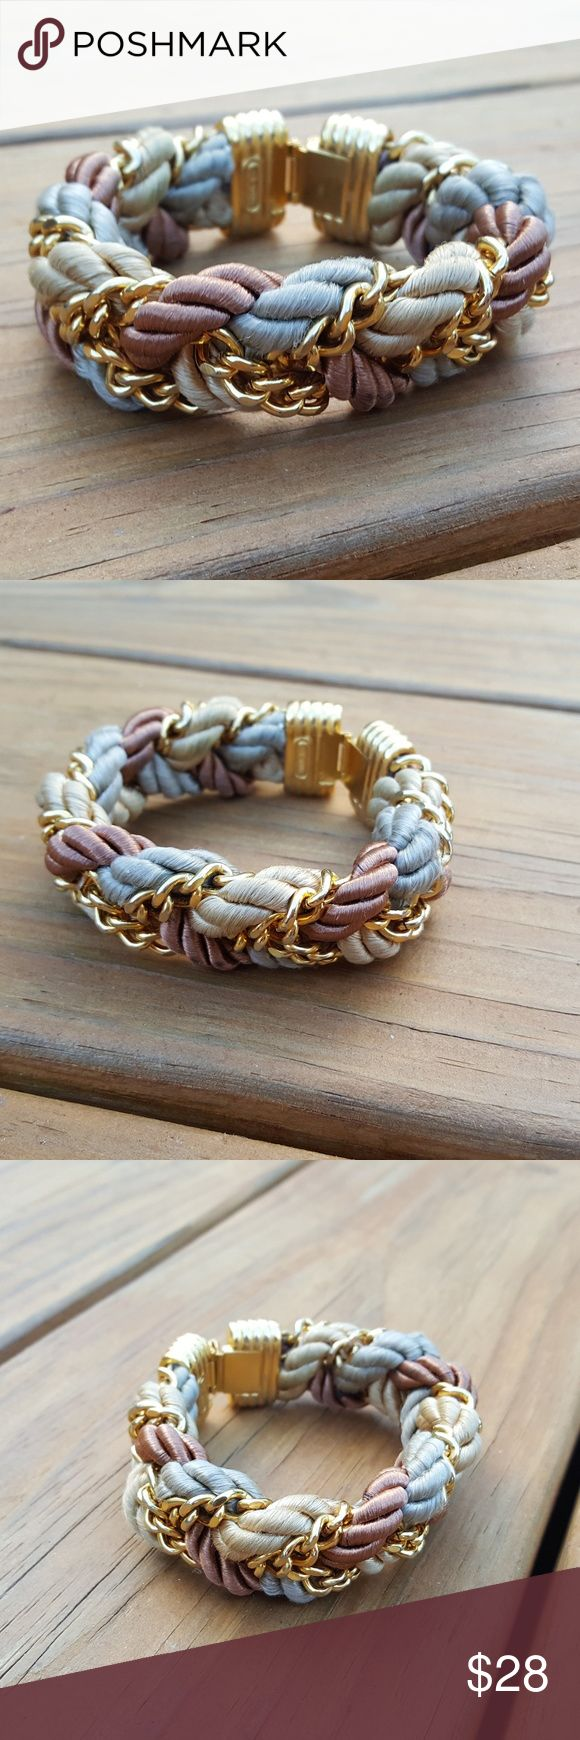 BaubleBar Braided Gold Rope Chain Bracelet This gorgeous bracelet features 3 neutral colored ropes with gold chain. It is in good pre-owned condition with some minor signs of wear such as some scratches on the claps. BaubleBar Jewelry Bracelets